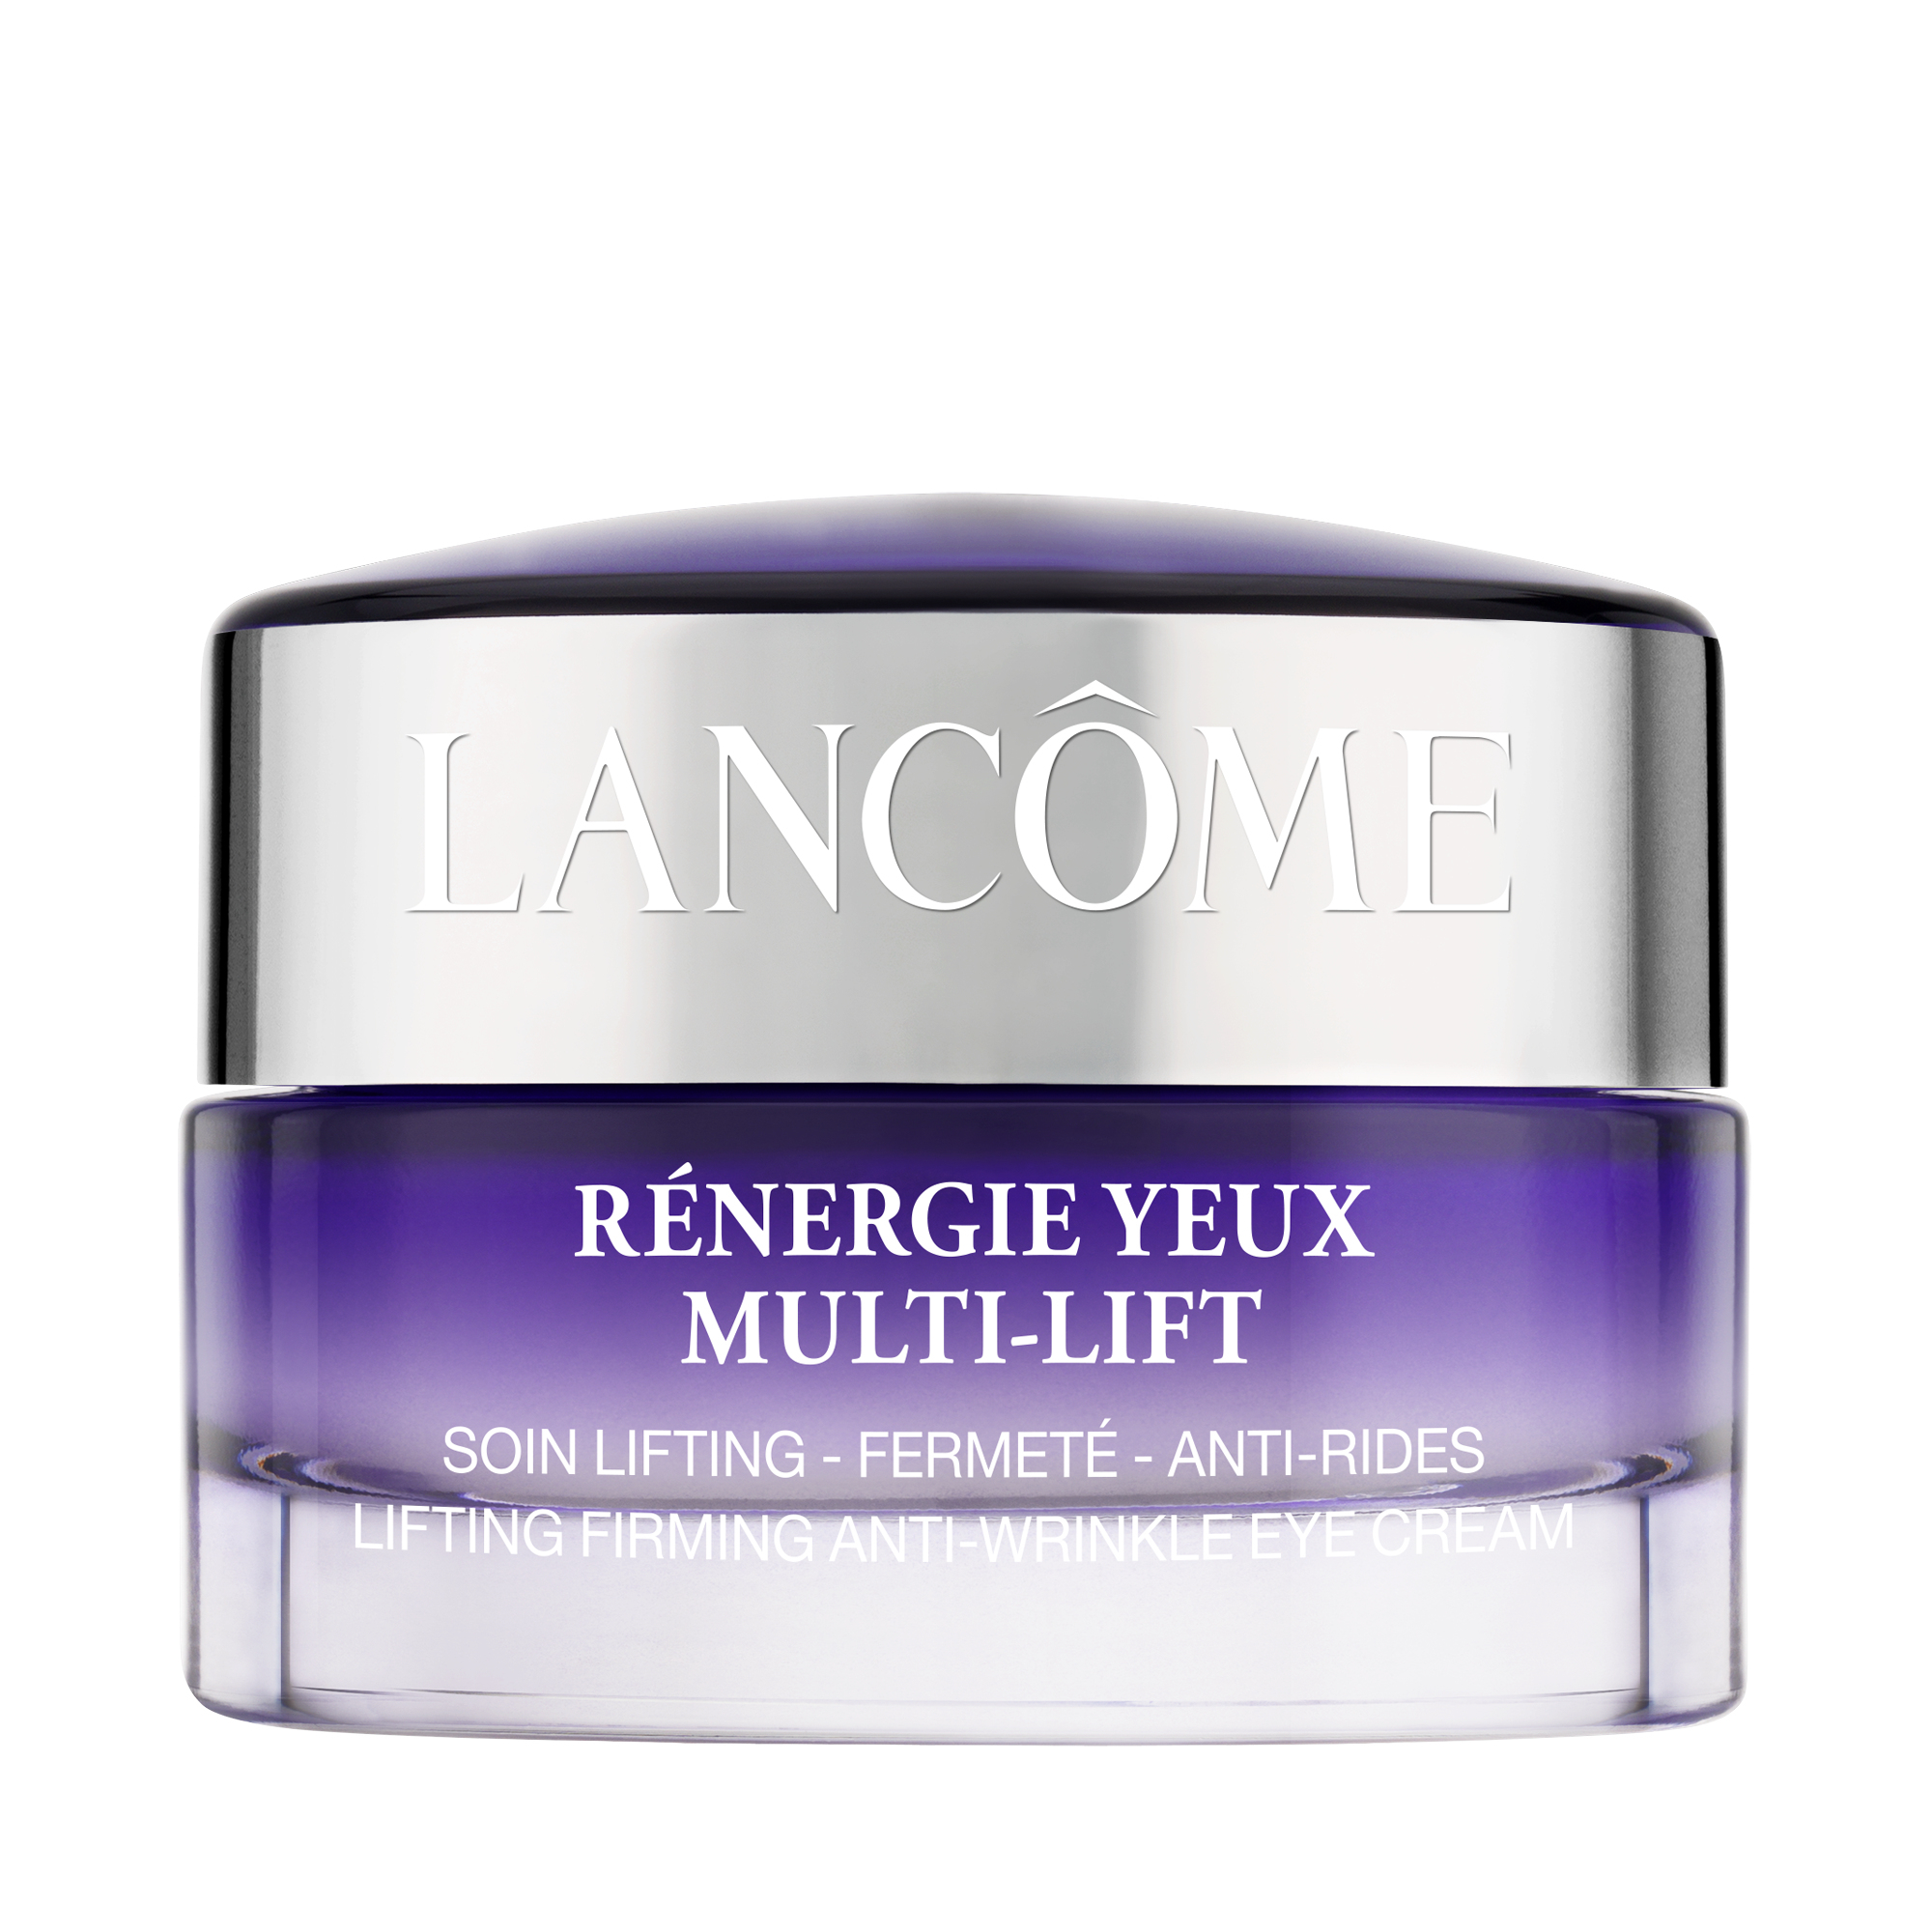 Rénergie Yeux Multi-Lift Eye Cream Rénerige Multi-Lift Yeux